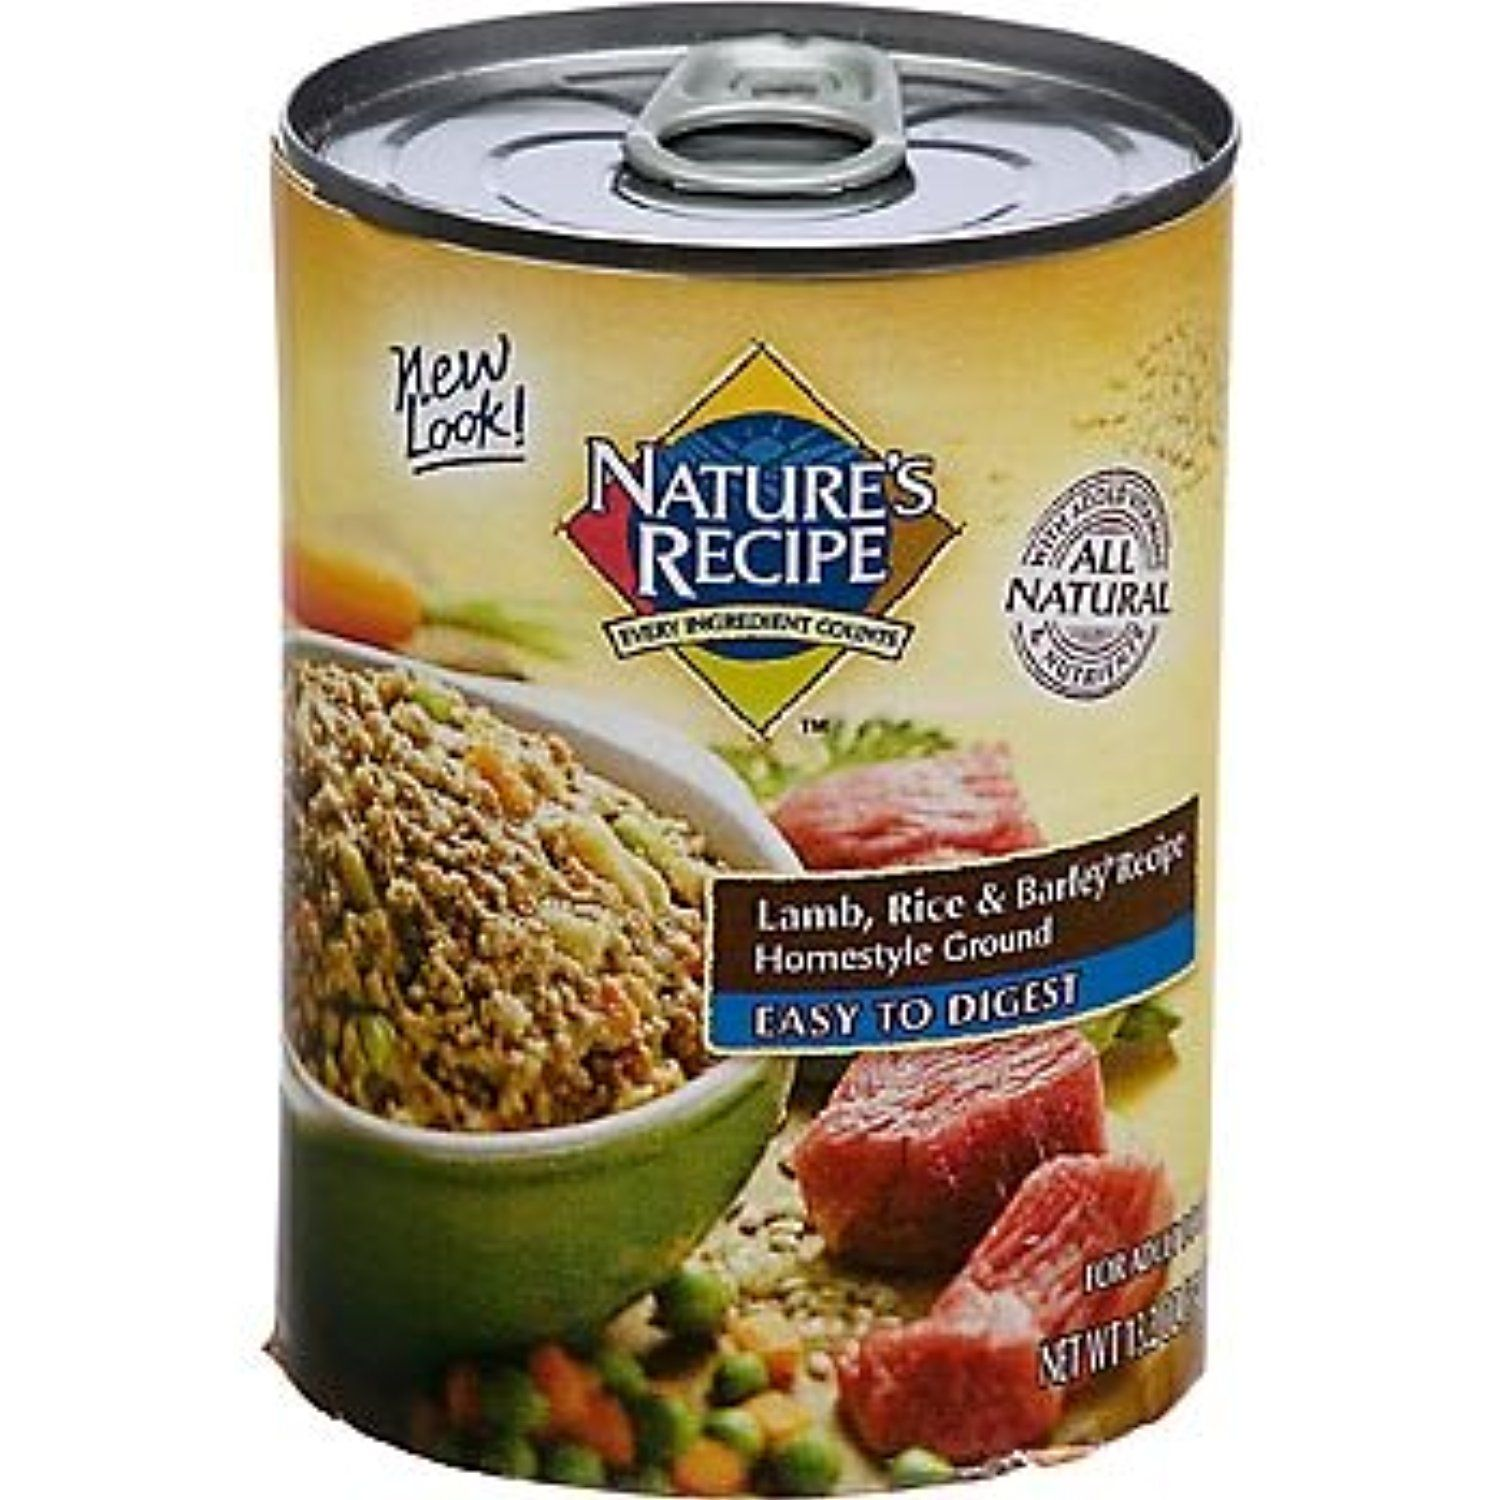 Nature S Recipe Easy To Digest Lamb Rice And Barley Formula Canned Dog Food You Could Get More D Canned Dog Food Dog Food Recipes Healthy Dog Food Recipes